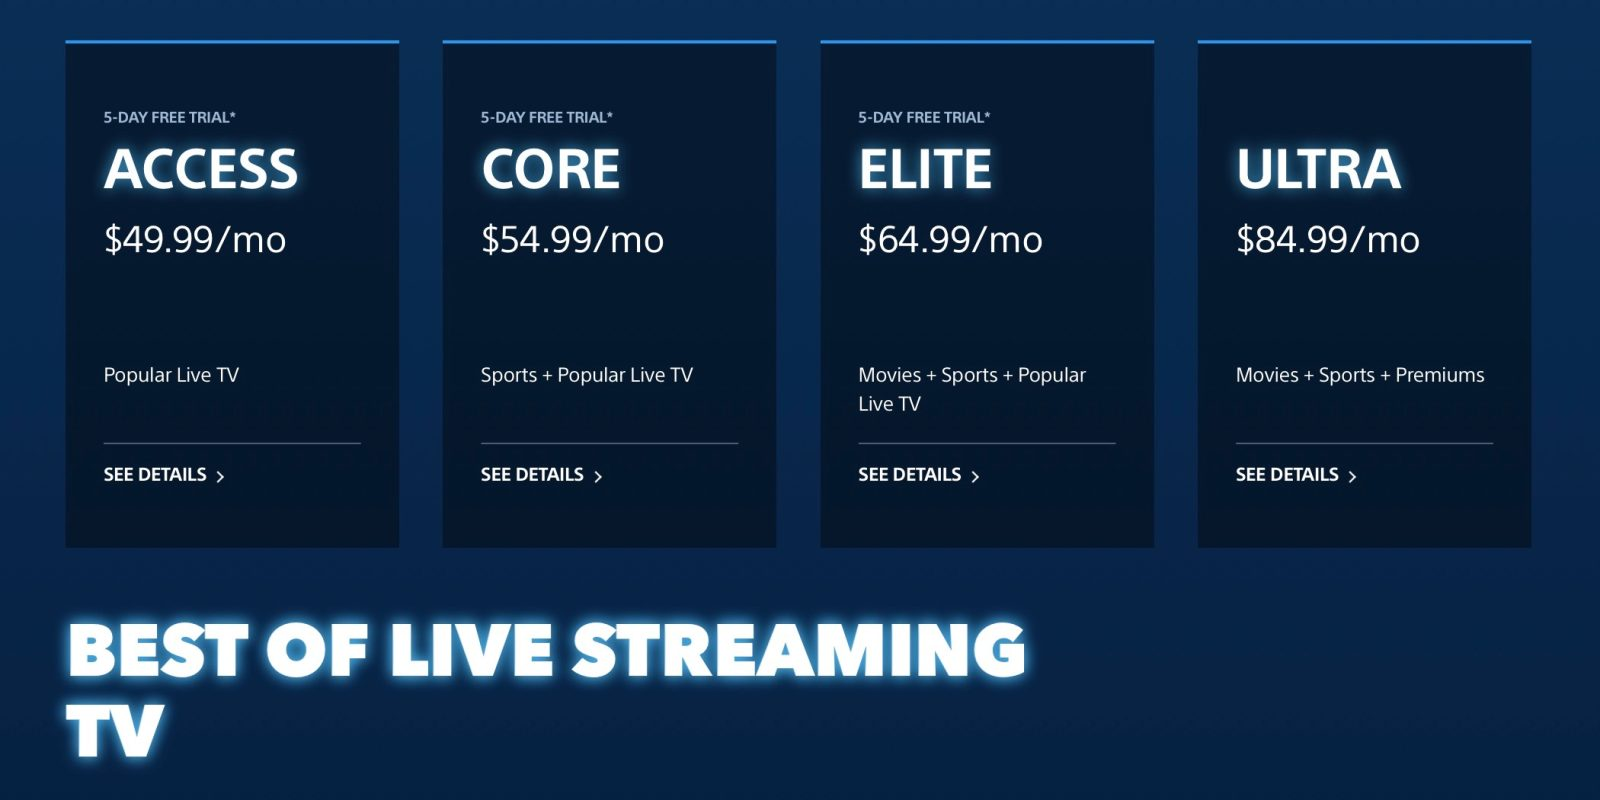 Playstation Vue Ups All Live Tv Streaming Plans By 5